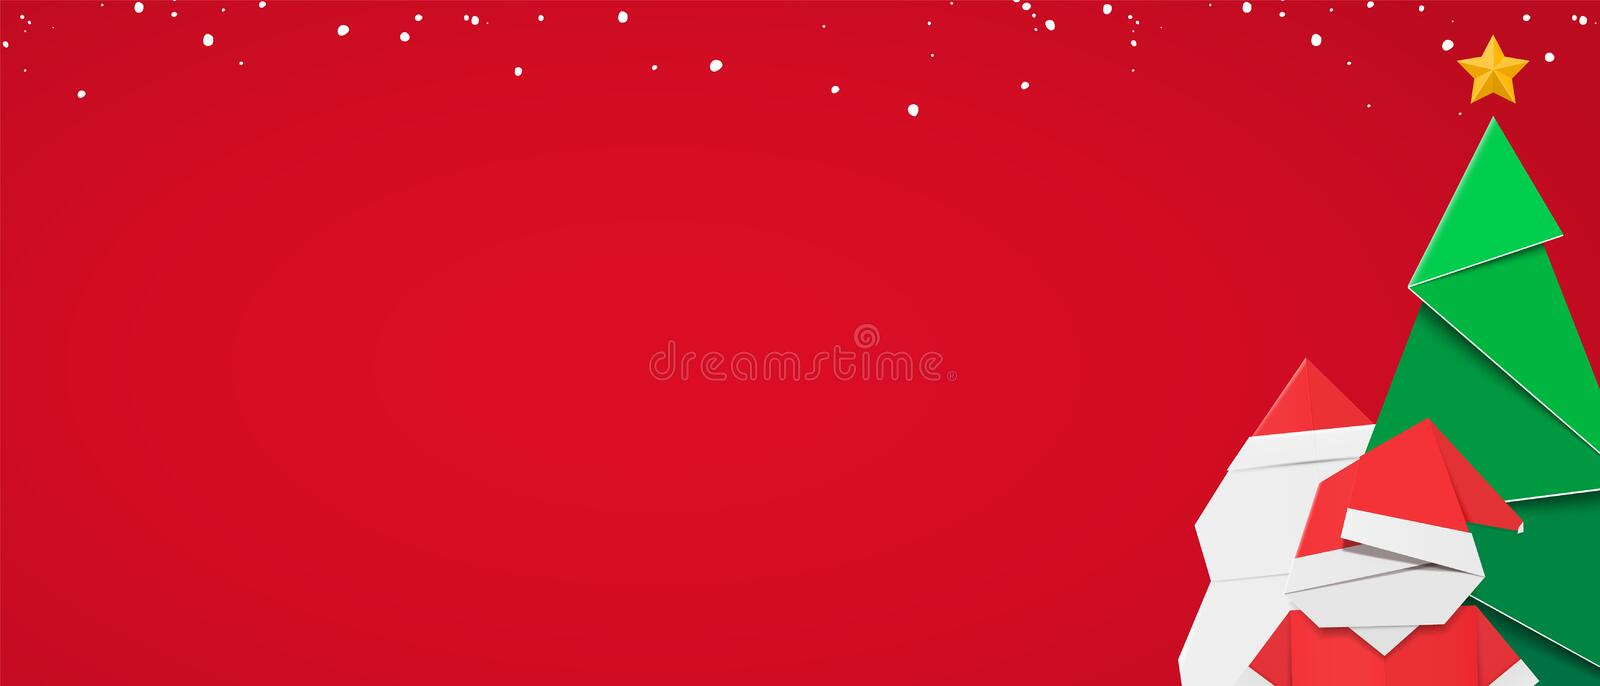 Winter web banner template with red background and christmas composition.  royalty free illustration